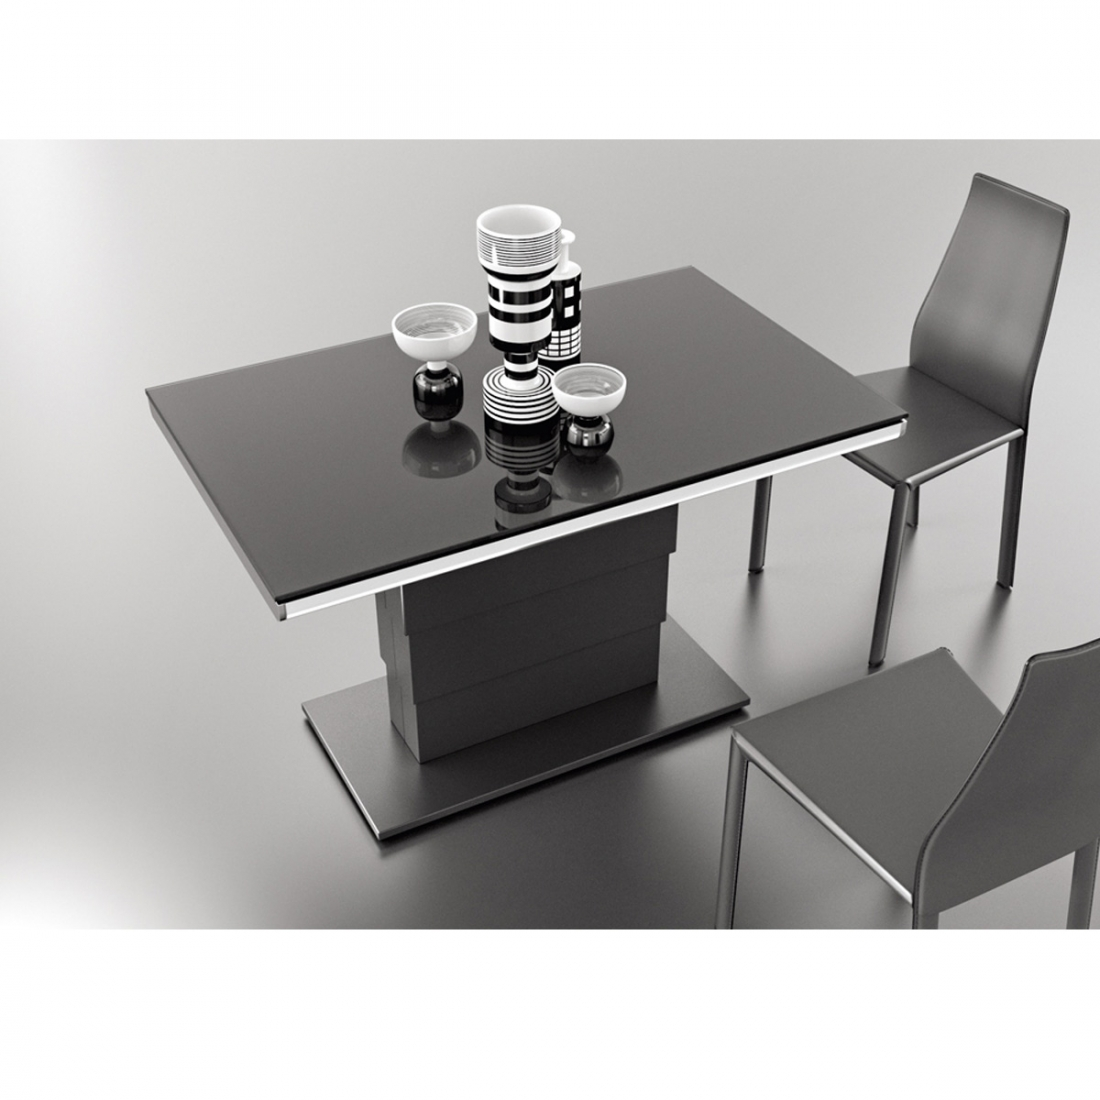 Table modulable design ares glass acier deco maison design for Table exterieur modulable